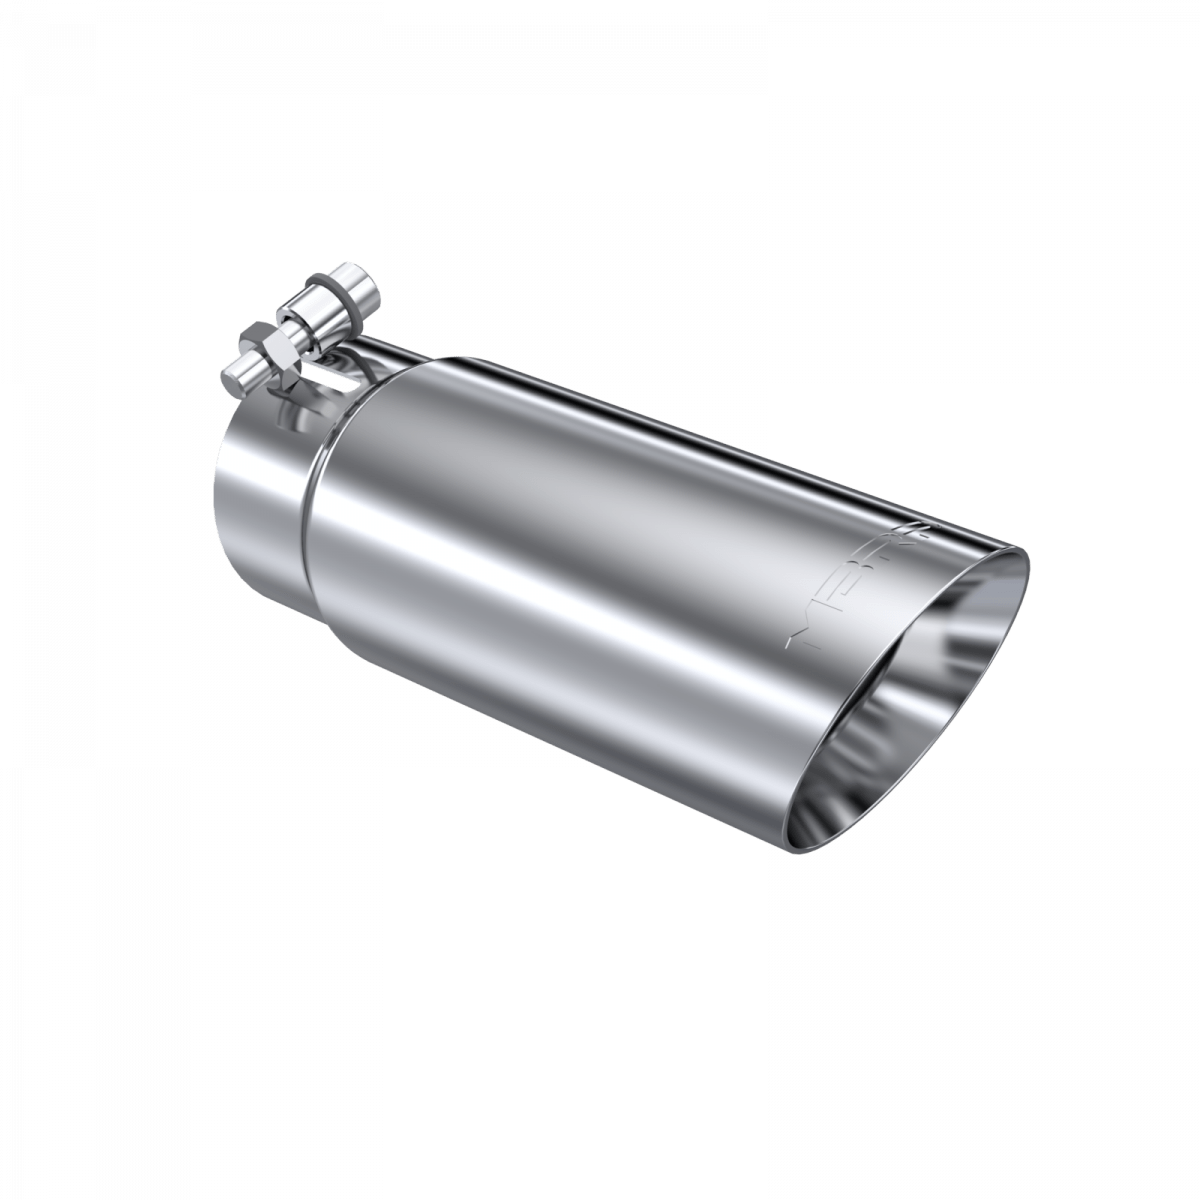 mbrp exhaust tip 3 1 2 inch o d dual wall angled end 3 inch inlet 10 inch length t304 stainless steel t5114